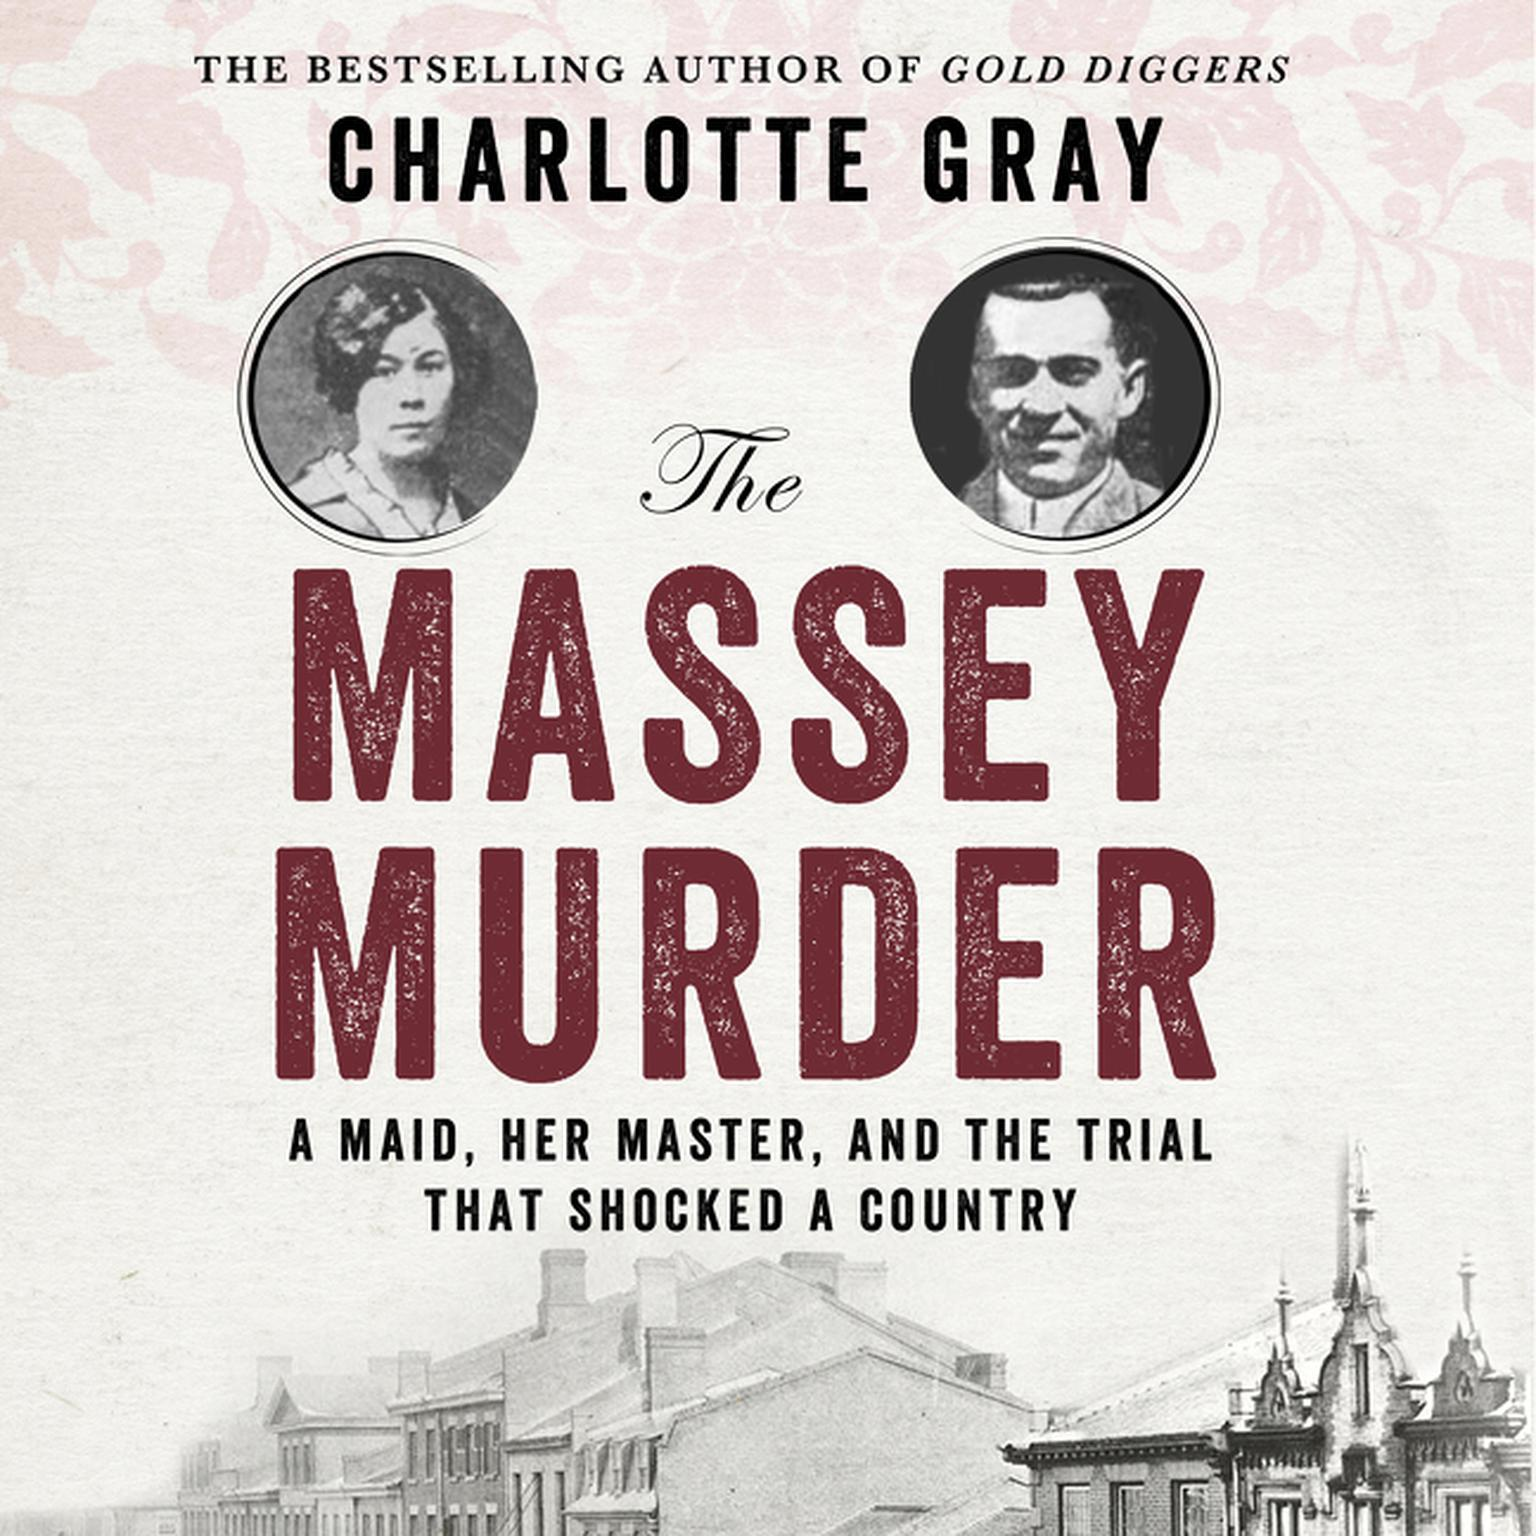 The Massey Murder: A Maid, Her Master and the Trial that Shocked a Country Audiobook, by Charlotte Gray